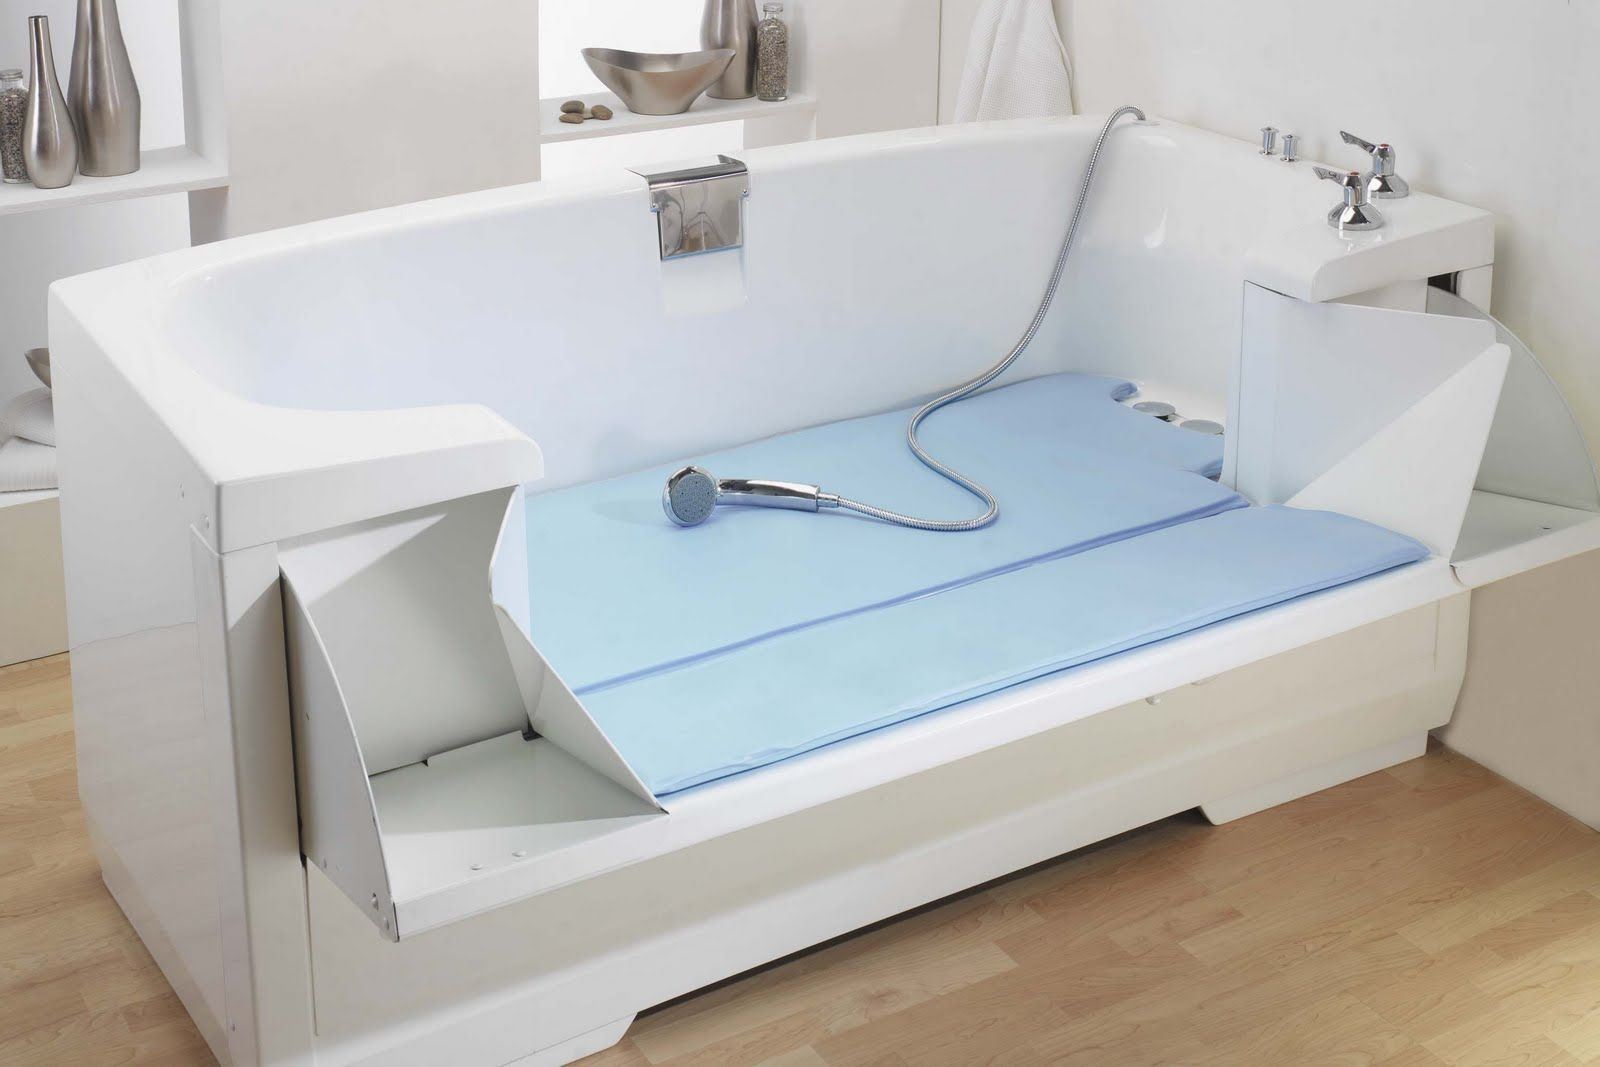 handicapper tubs | Bathtubs for the elderly and disabled | Disabled ...